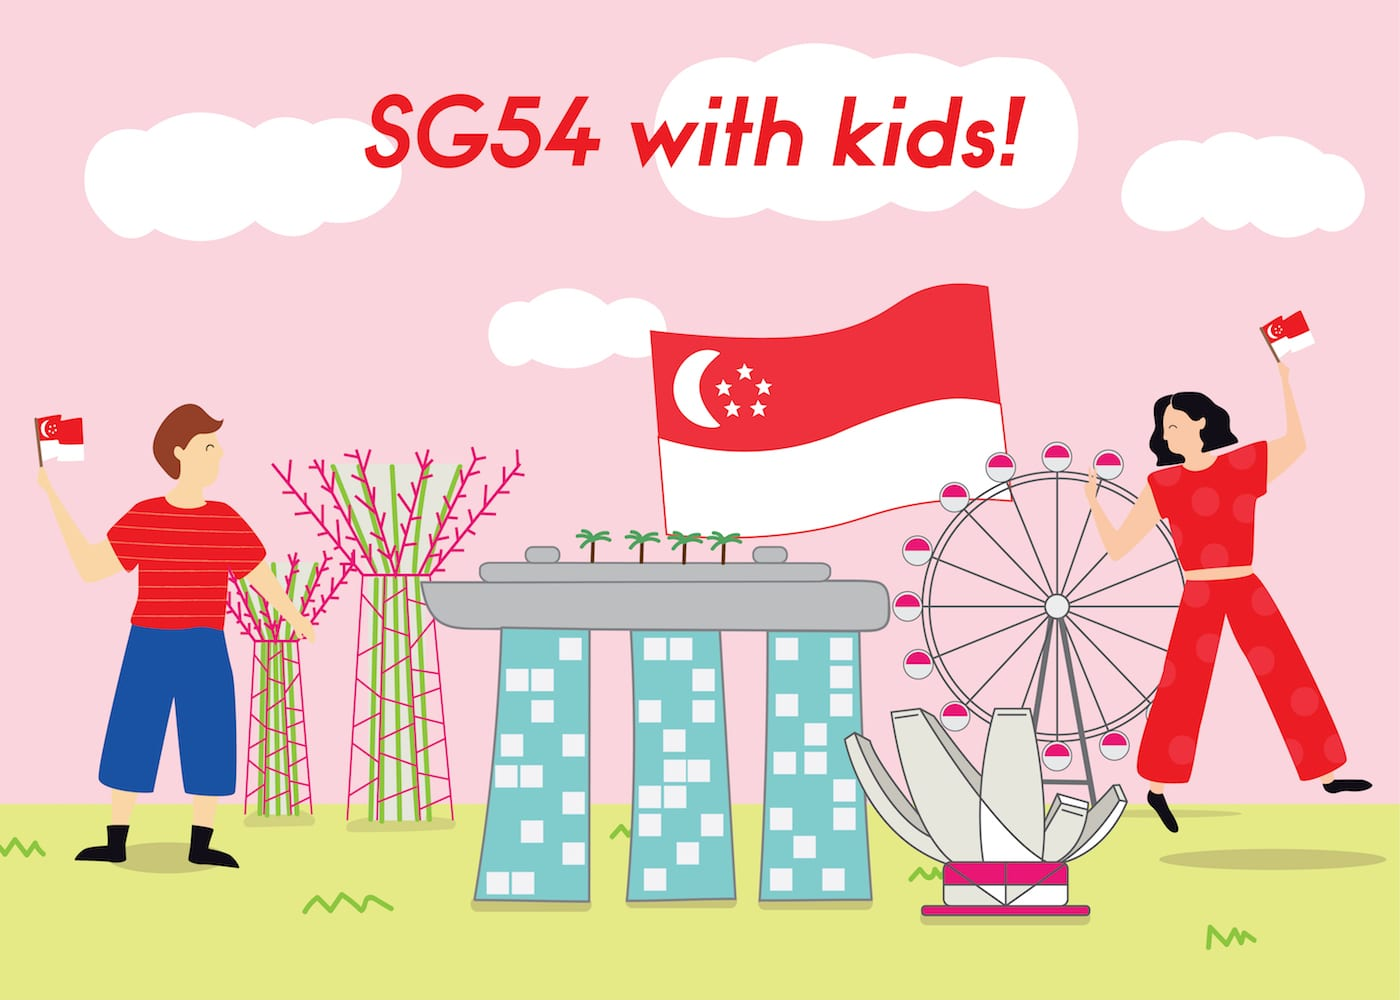 National Day 2019 celebrations: 54 things to do in Singapore with the kids